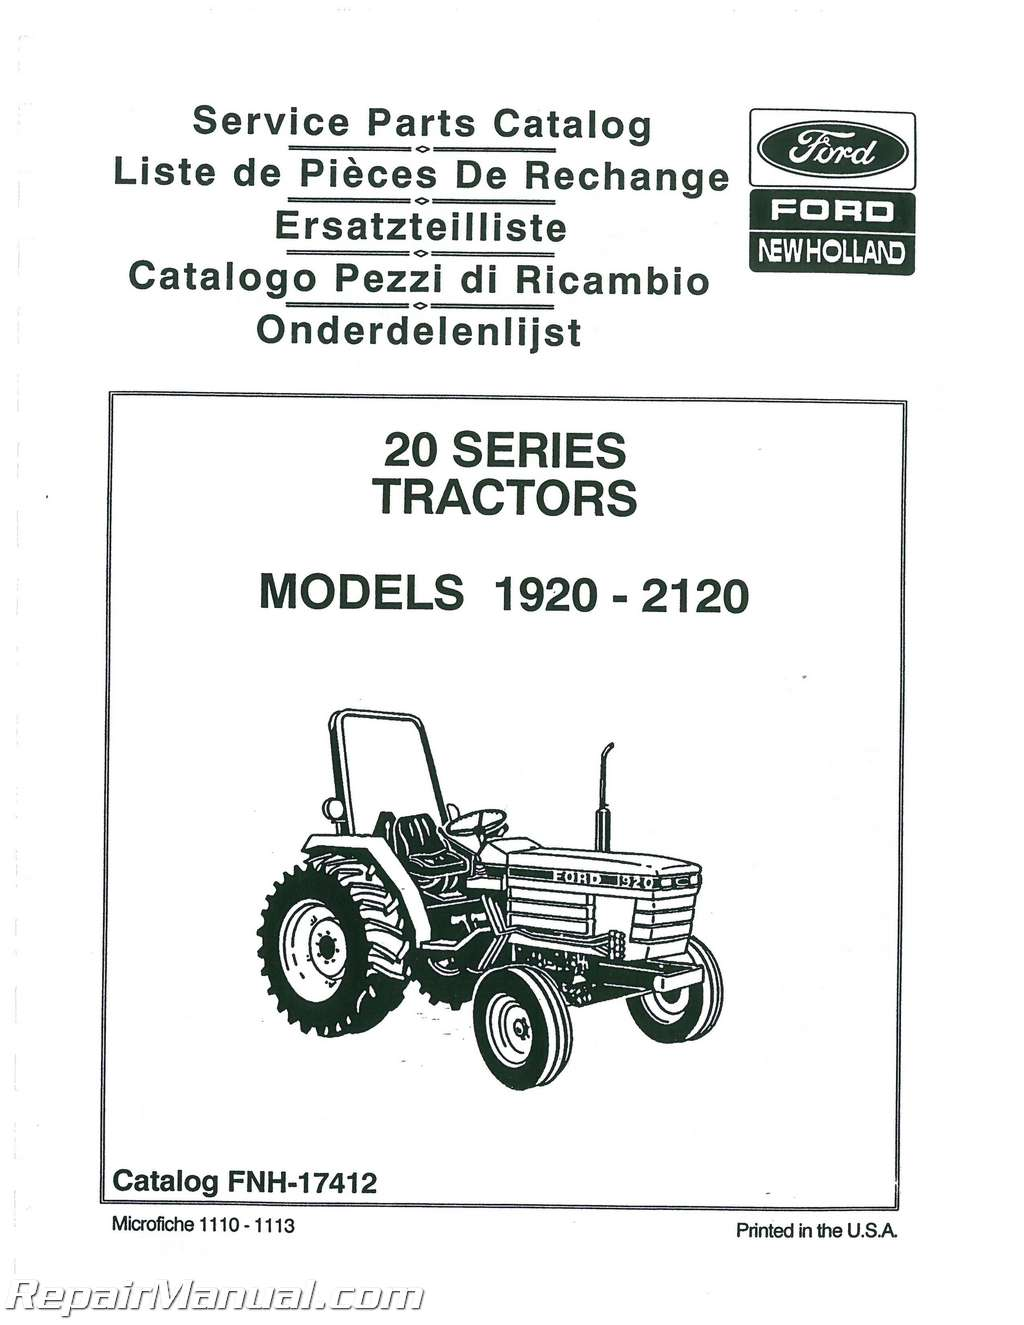 Wiring Ford For Diagrams 8n Tractor Print Generator Diagram Harness 2120 Detailed Rh Standrewsthorntonheath Co Uk Ignition 1948